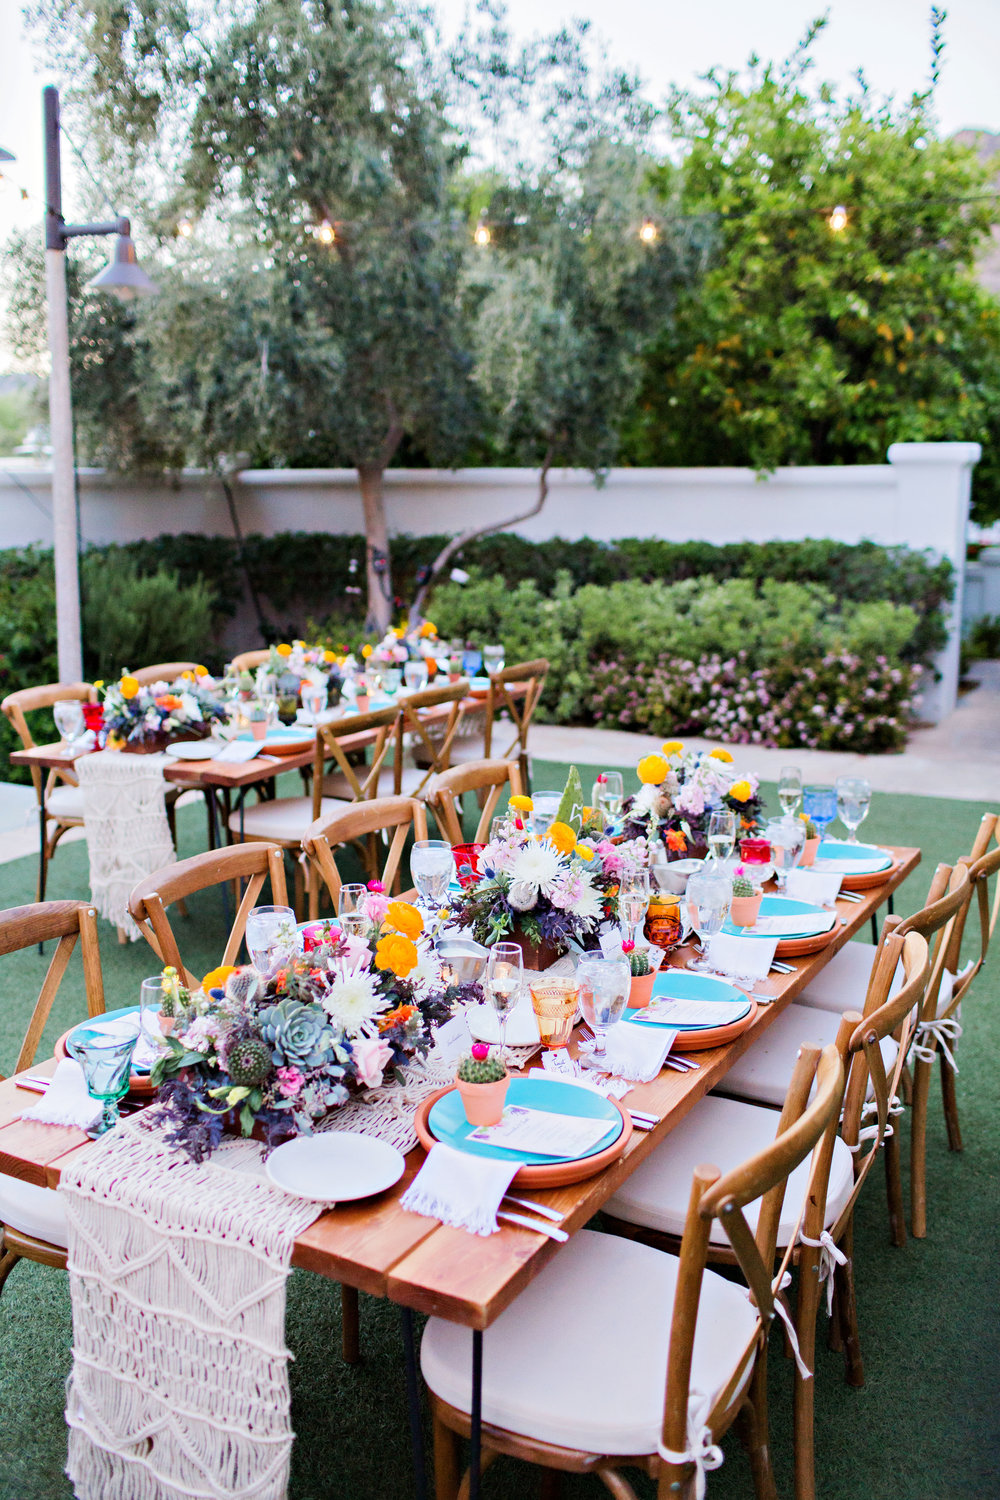 Fiesta Inspired Wedding Reception - El Chorro - macrame table runners - bright centerpieces